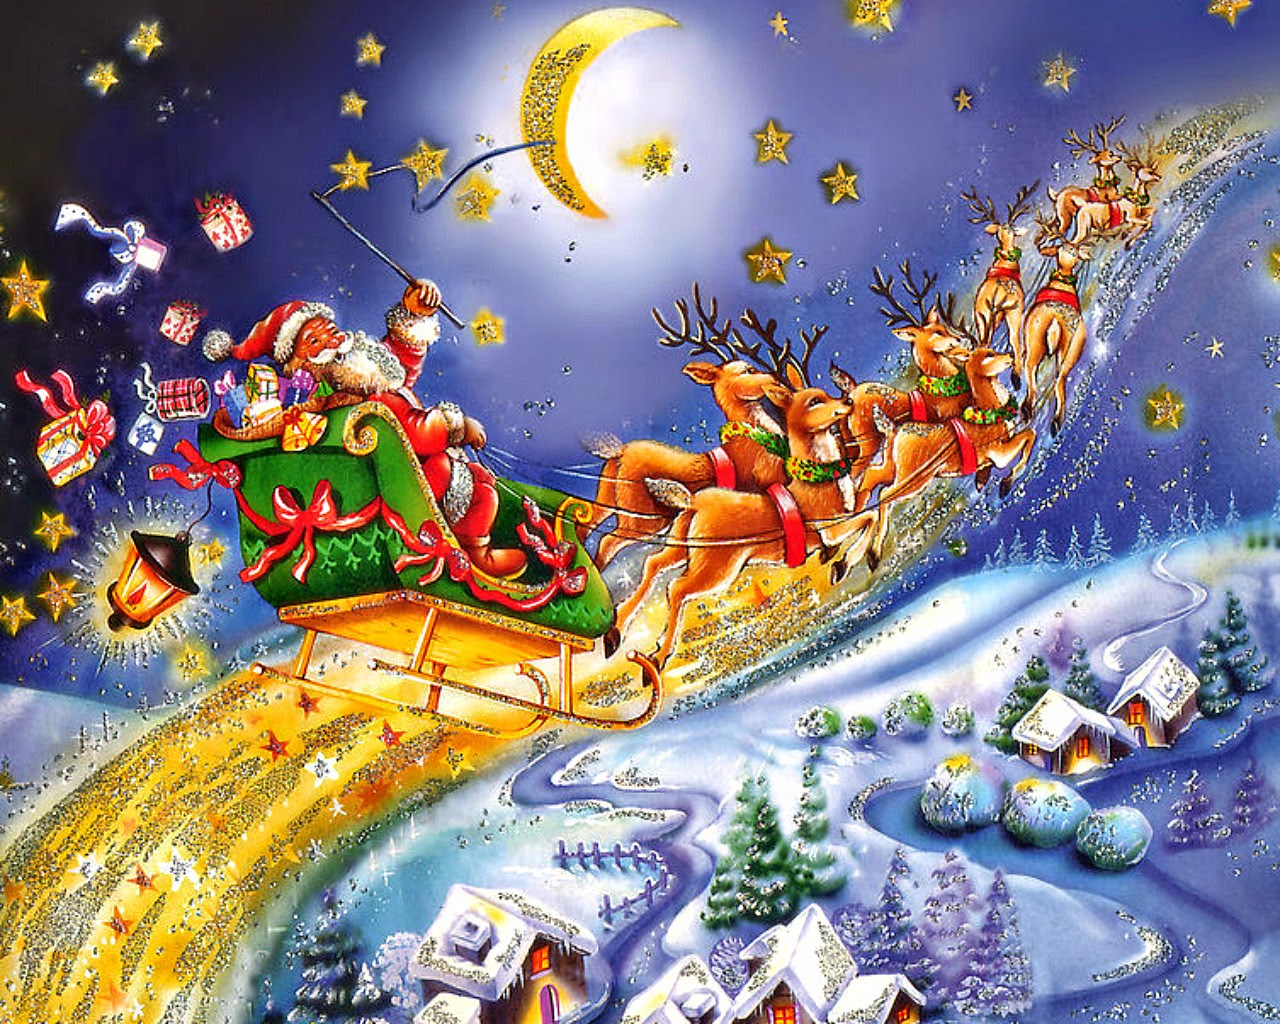 Santa Claus coming to town riding his reindeer sleigh flying in sky ...